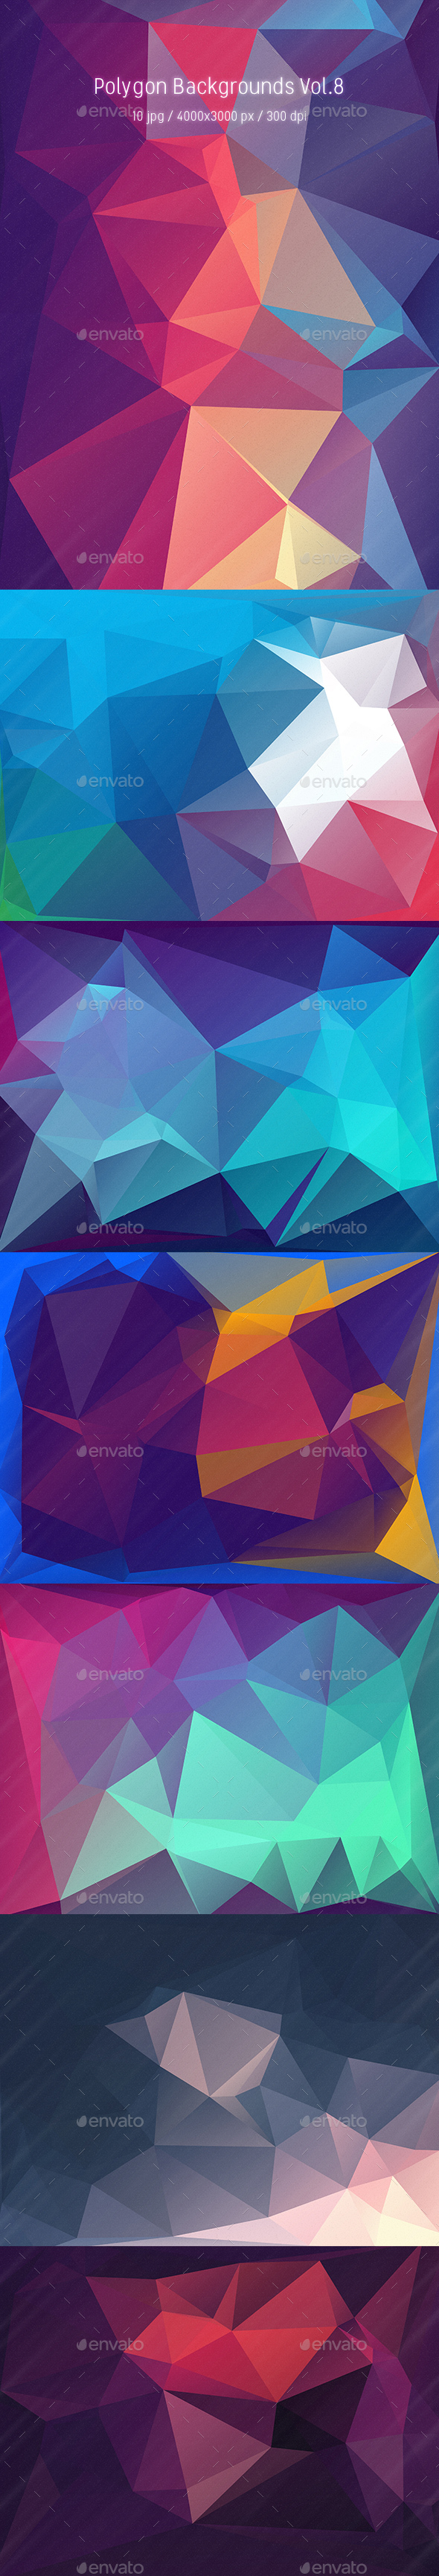 Polygon Backgrounds Vol.9